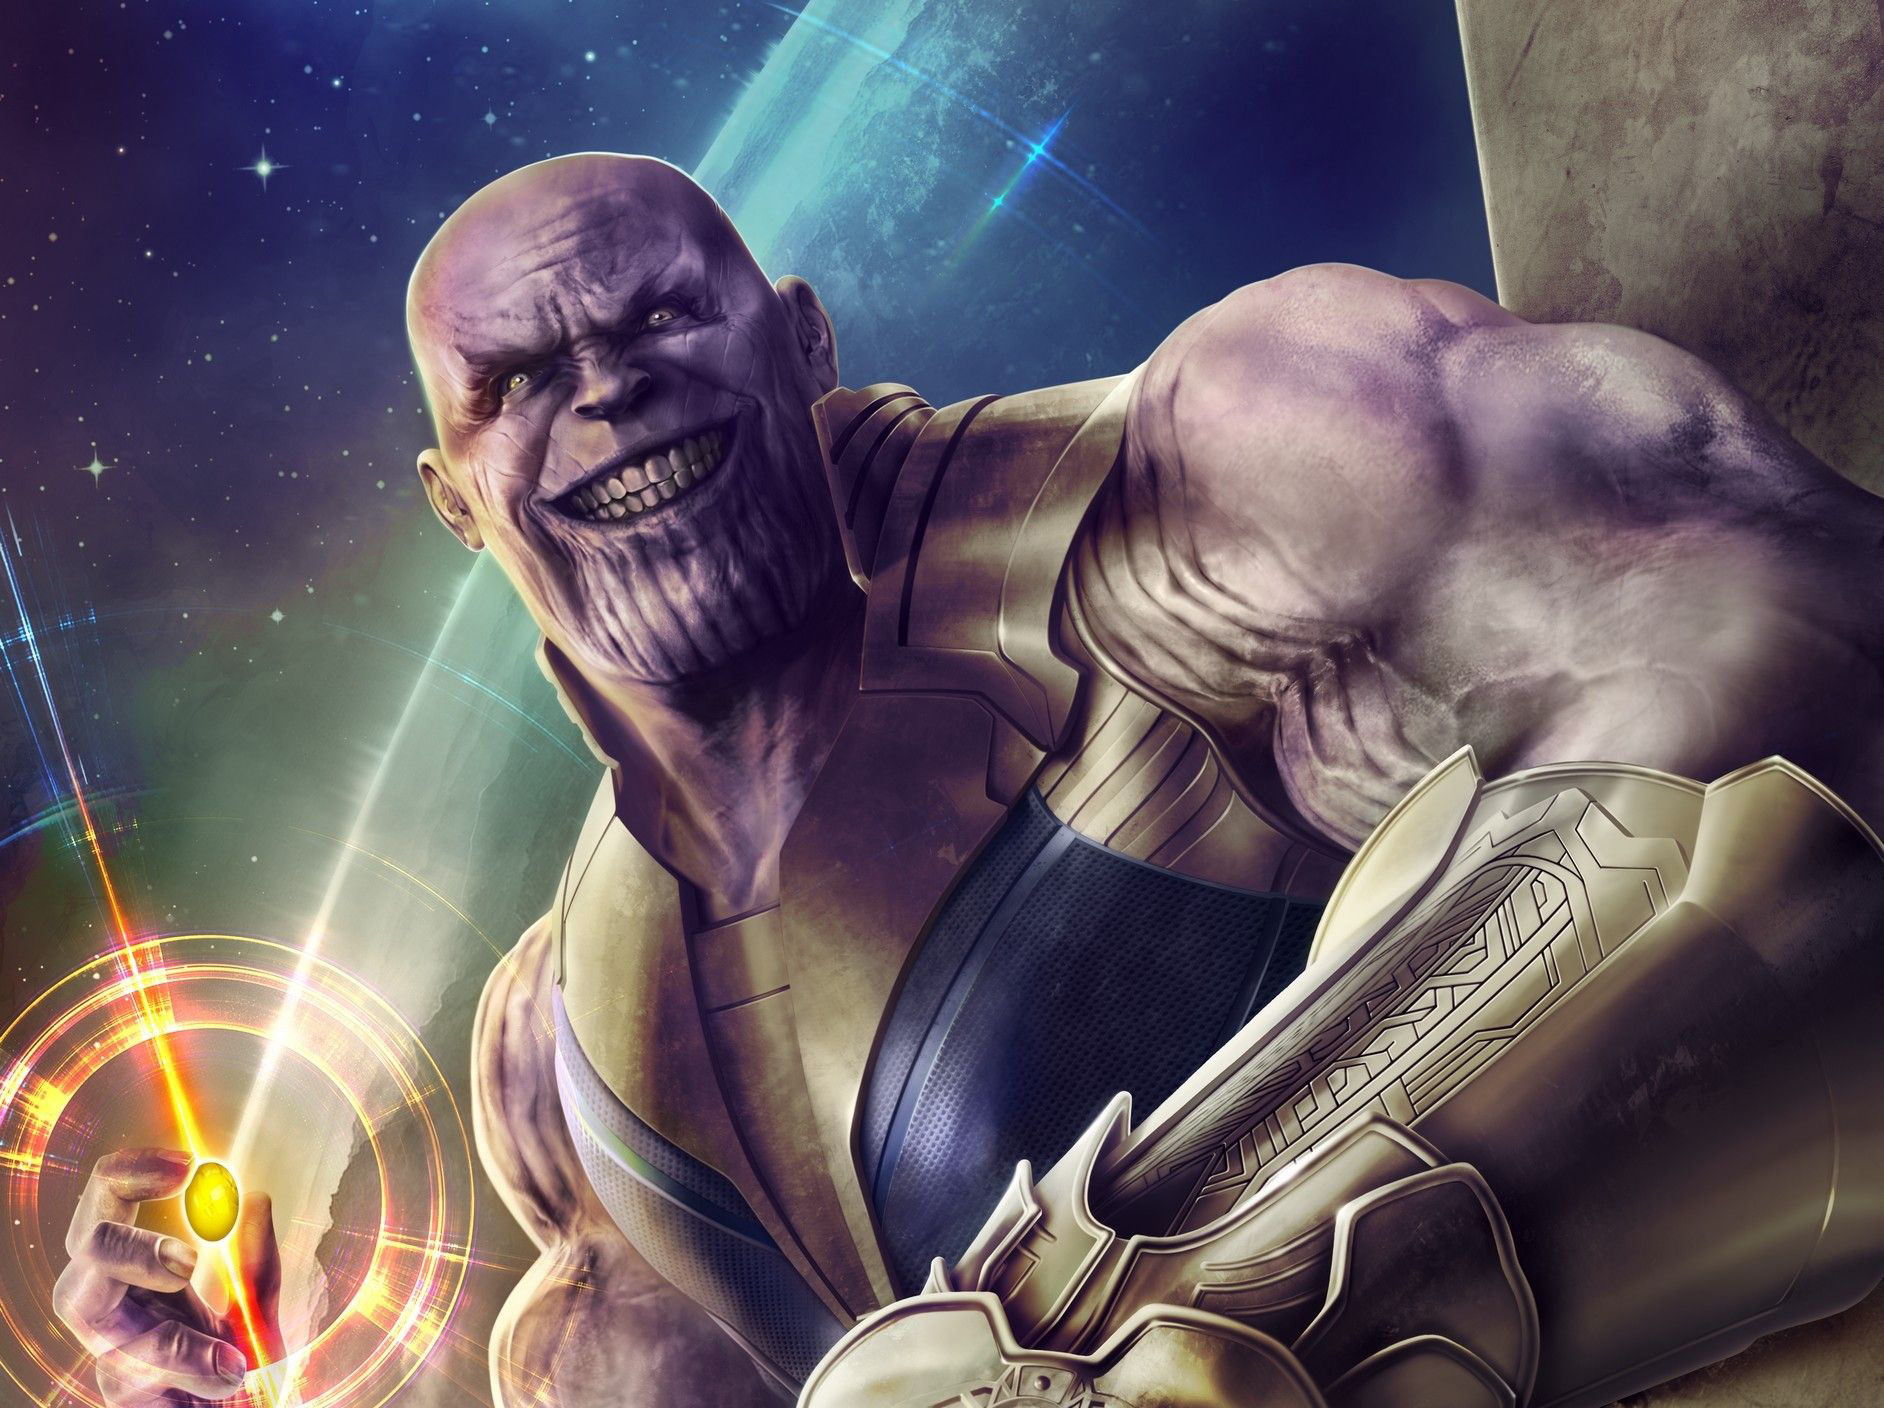 Thanos Hd Wallpaper: Thanos Infinity Stone Artwork, Full HD Wallpaper